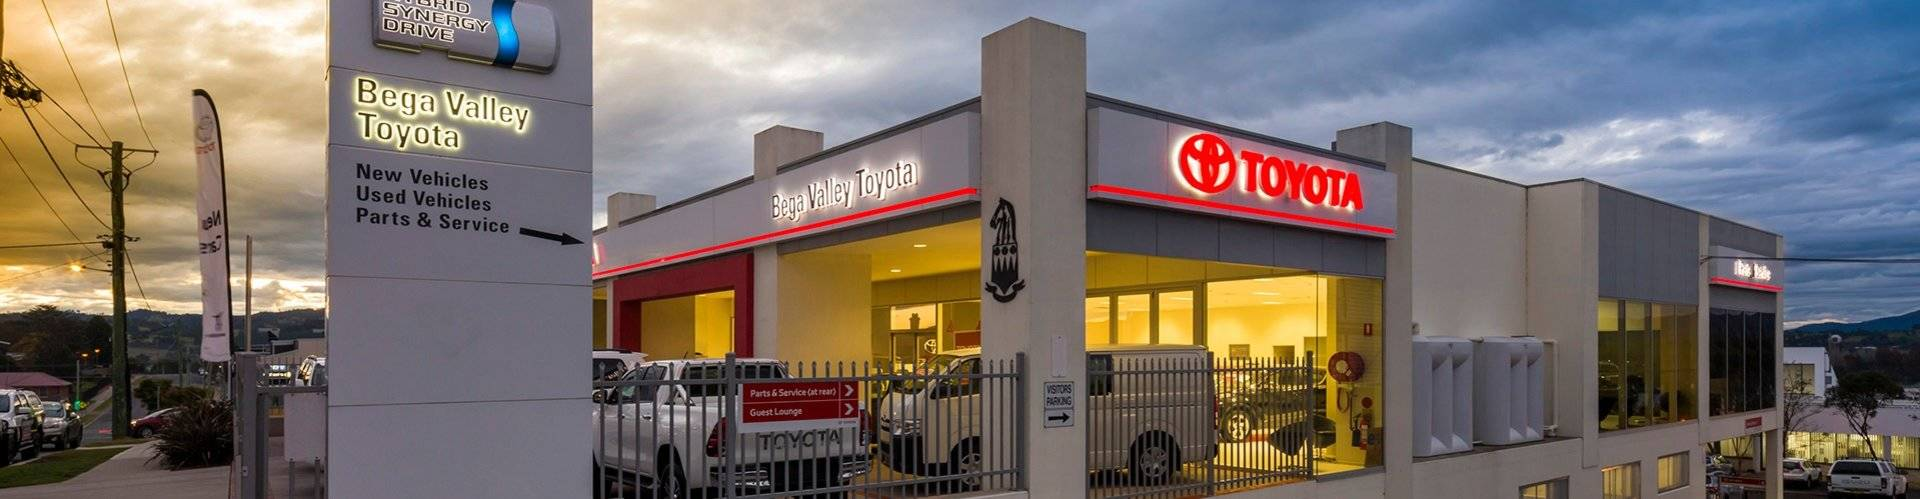 Bega Valley Toyota